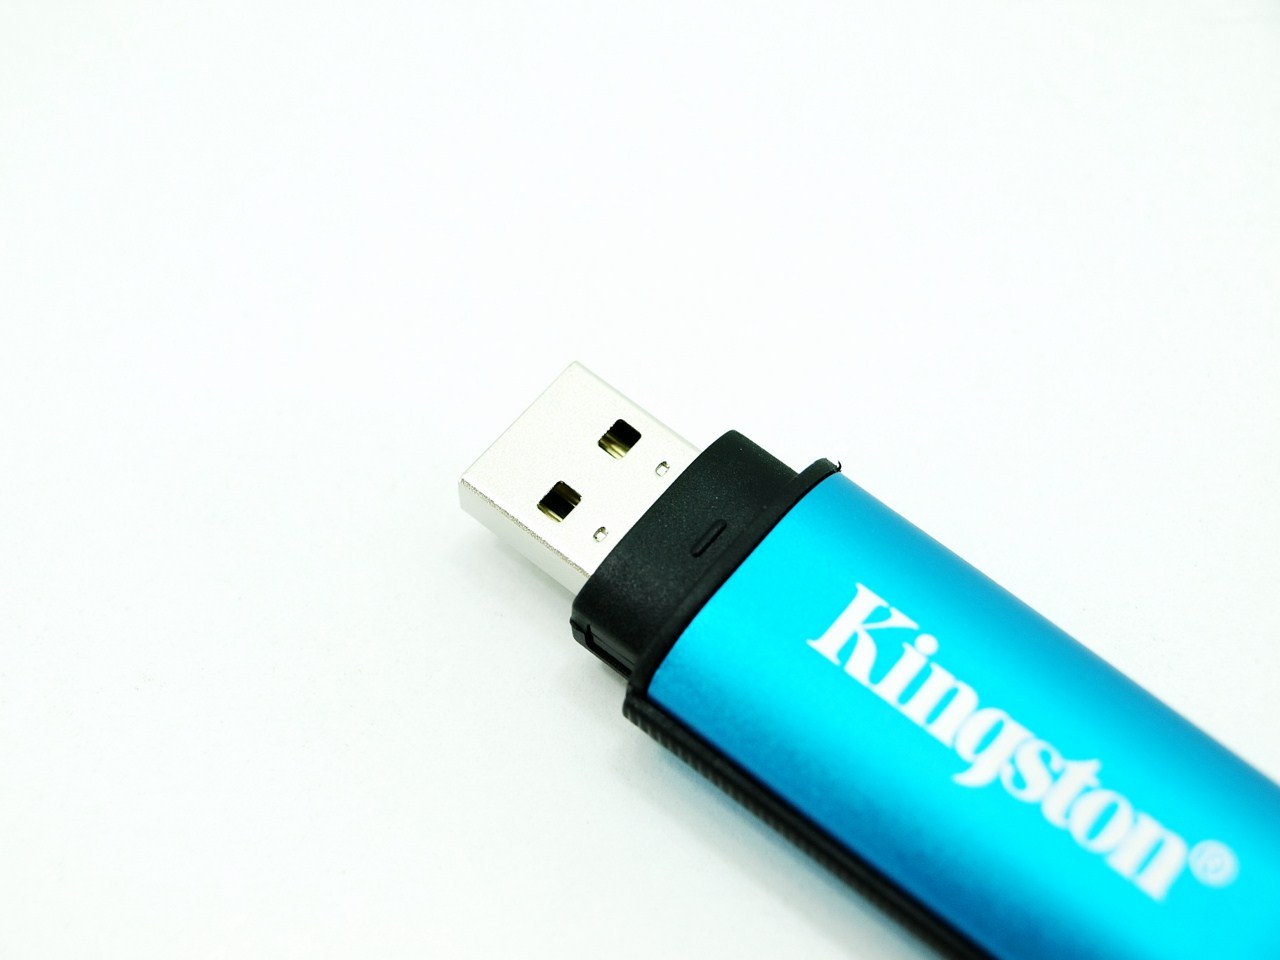 Kingston Datatraveler Vault Privacy 8gb Usb 20 Flash Drive Review Flasdisk 4gb Unlike Other Drives Manufactured By The Dt Does Not Have Capacity And Serial Number Engraved On Head